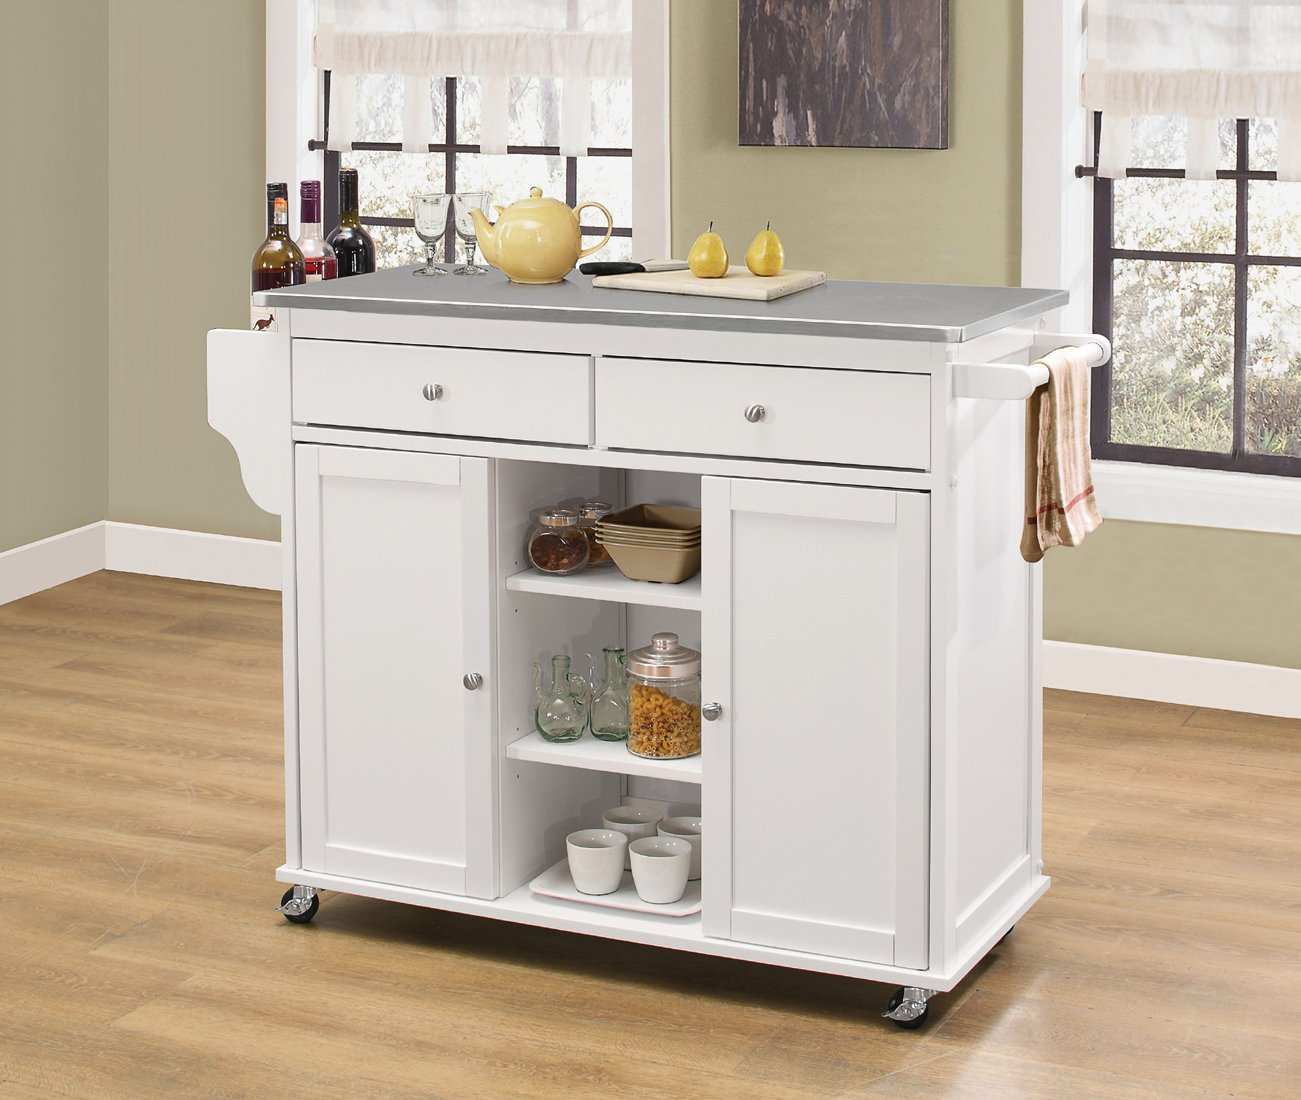 Acme 98307 Tullarick Stainless Steel White Kitchen Cart